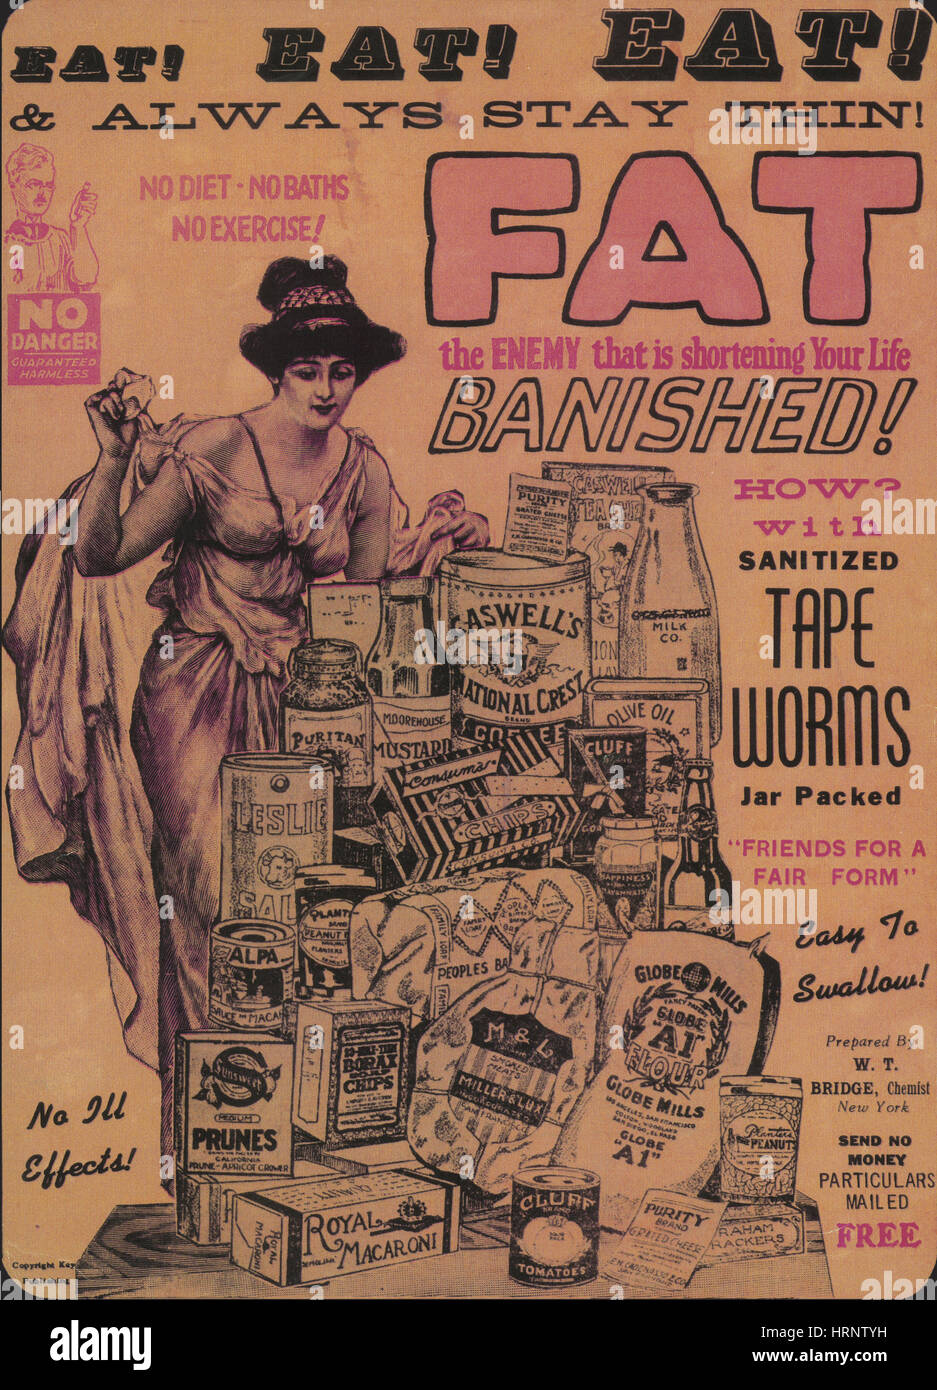 Weight Loss Ad, Sanitized Tapeworms - Stock Image